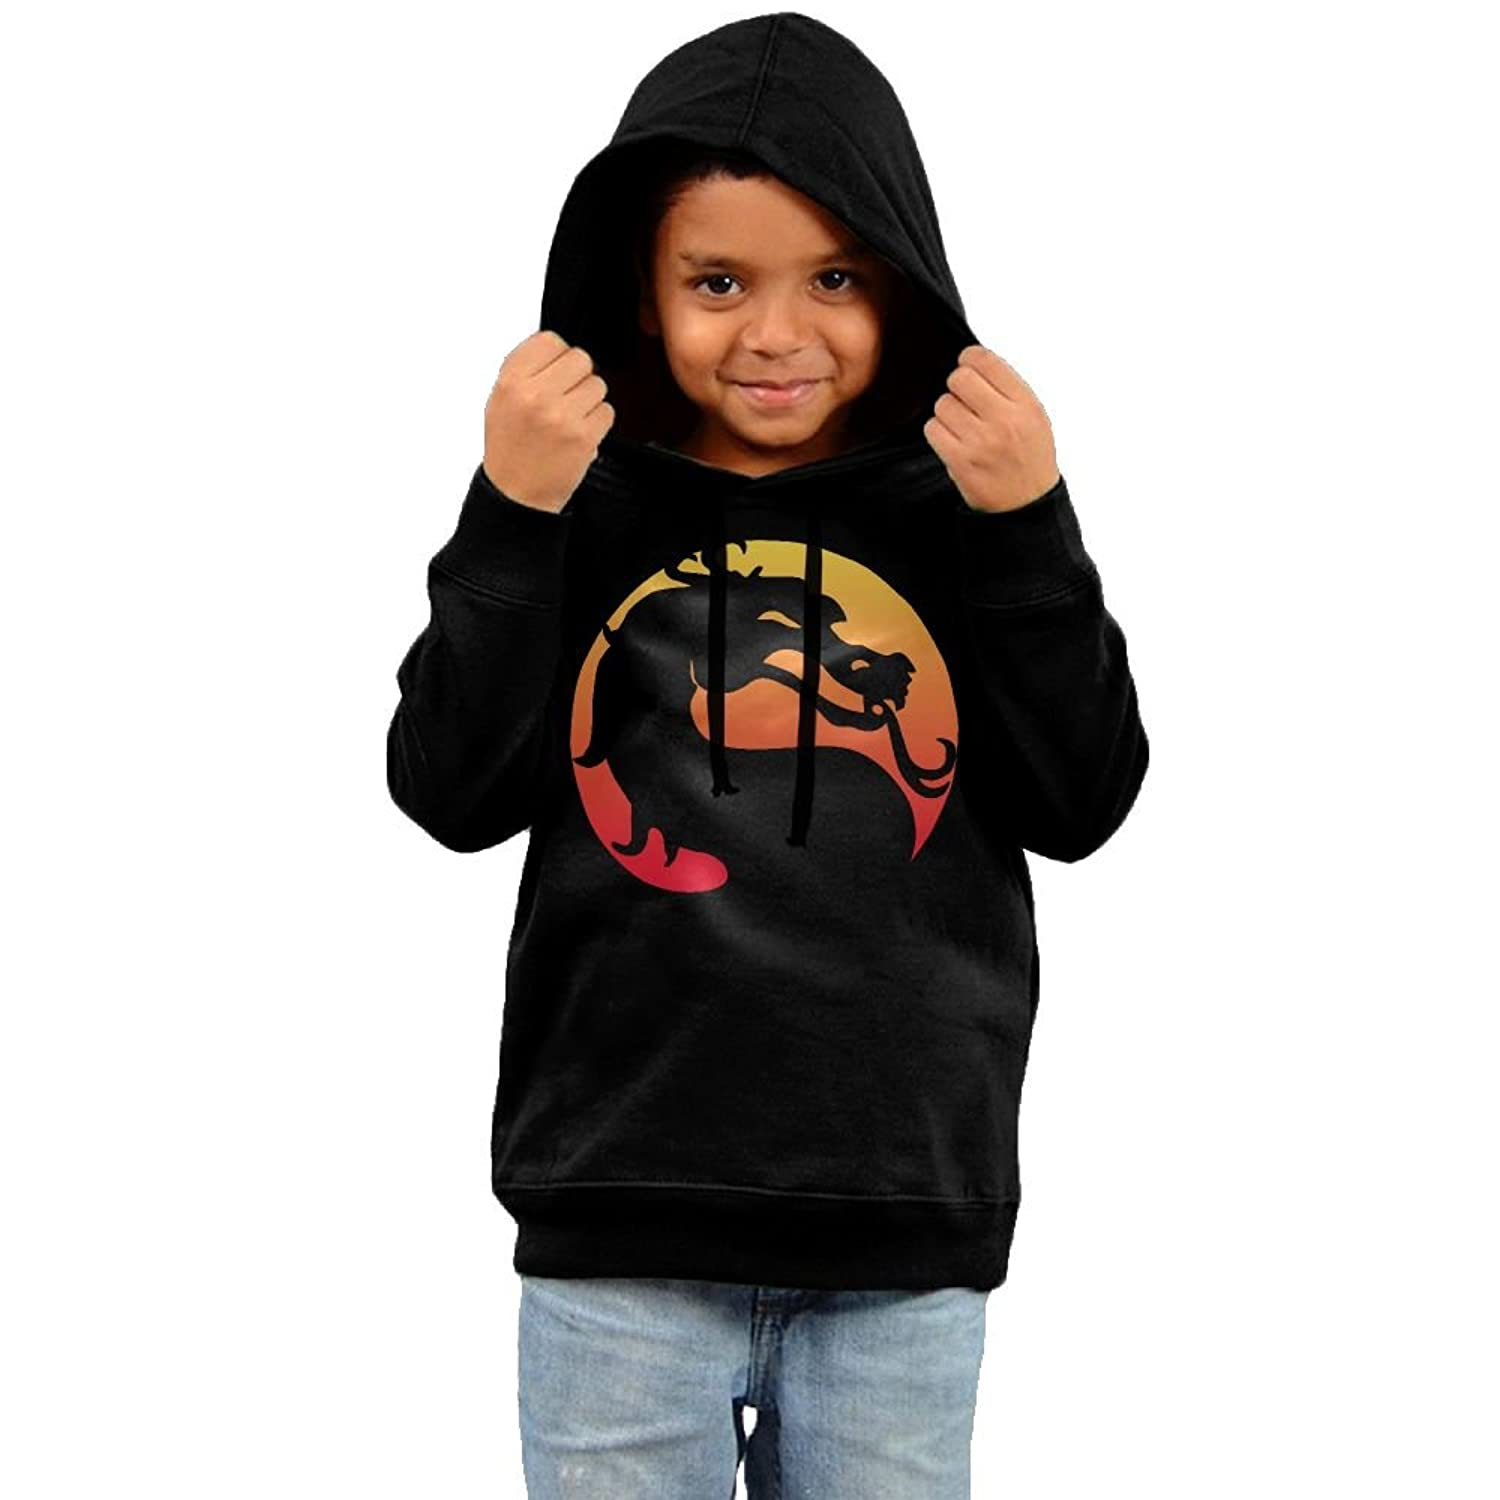 d83a43f073ccf Billy S Kids Mortal Kombat X Boy s   Girl s Sweatshirt Black ...